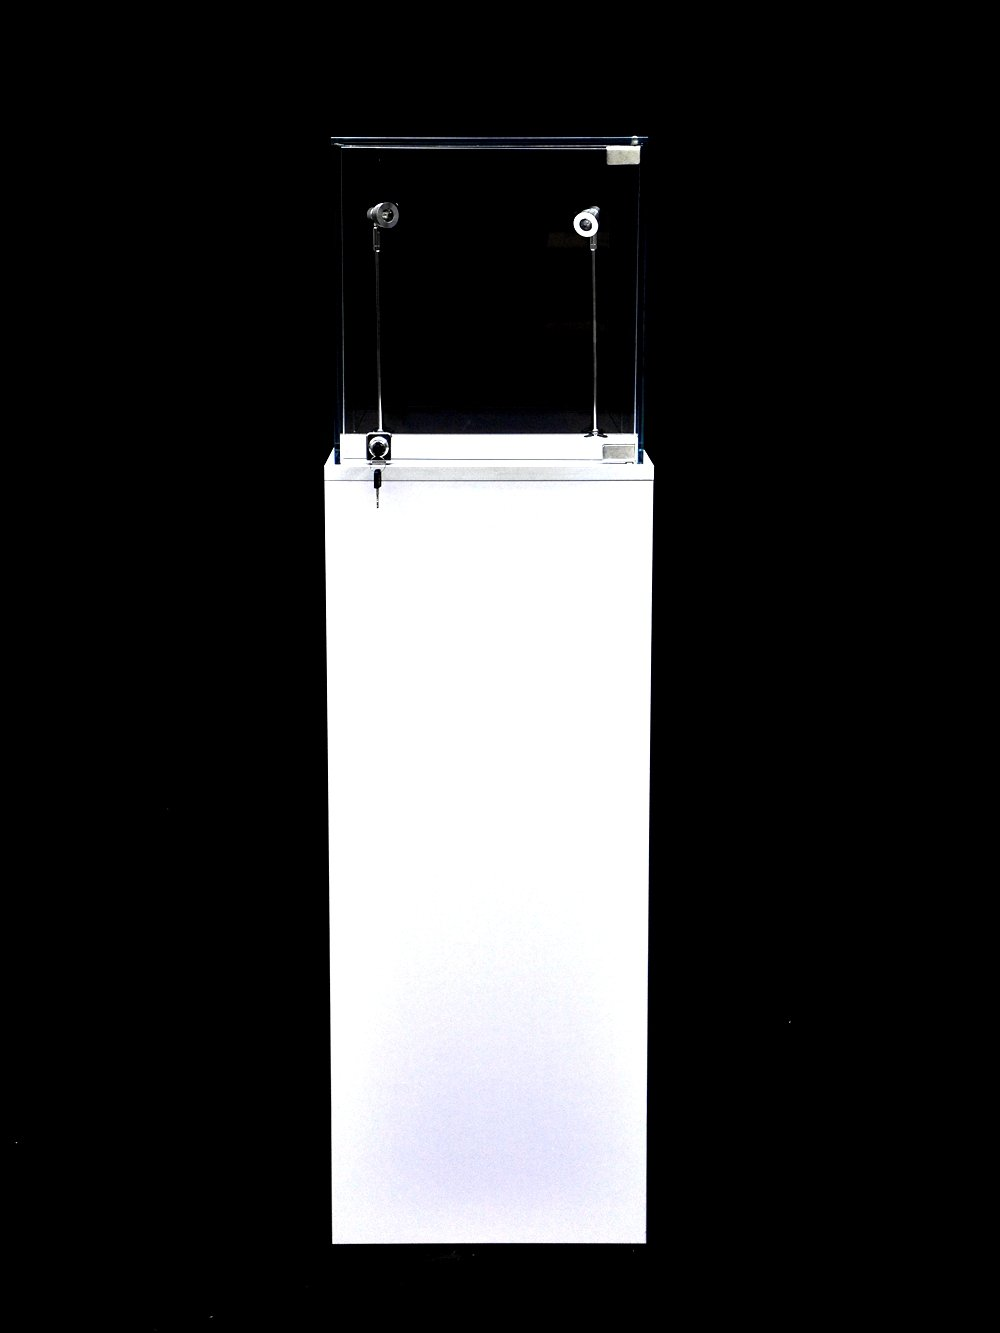 Mutipurpose Pedestal Exhibition Stand Display Case Showcase For Retail, Jewelry Display, Museum, Colletible,, Tempered Glass, White Finished With LED Light (LARGE-W)